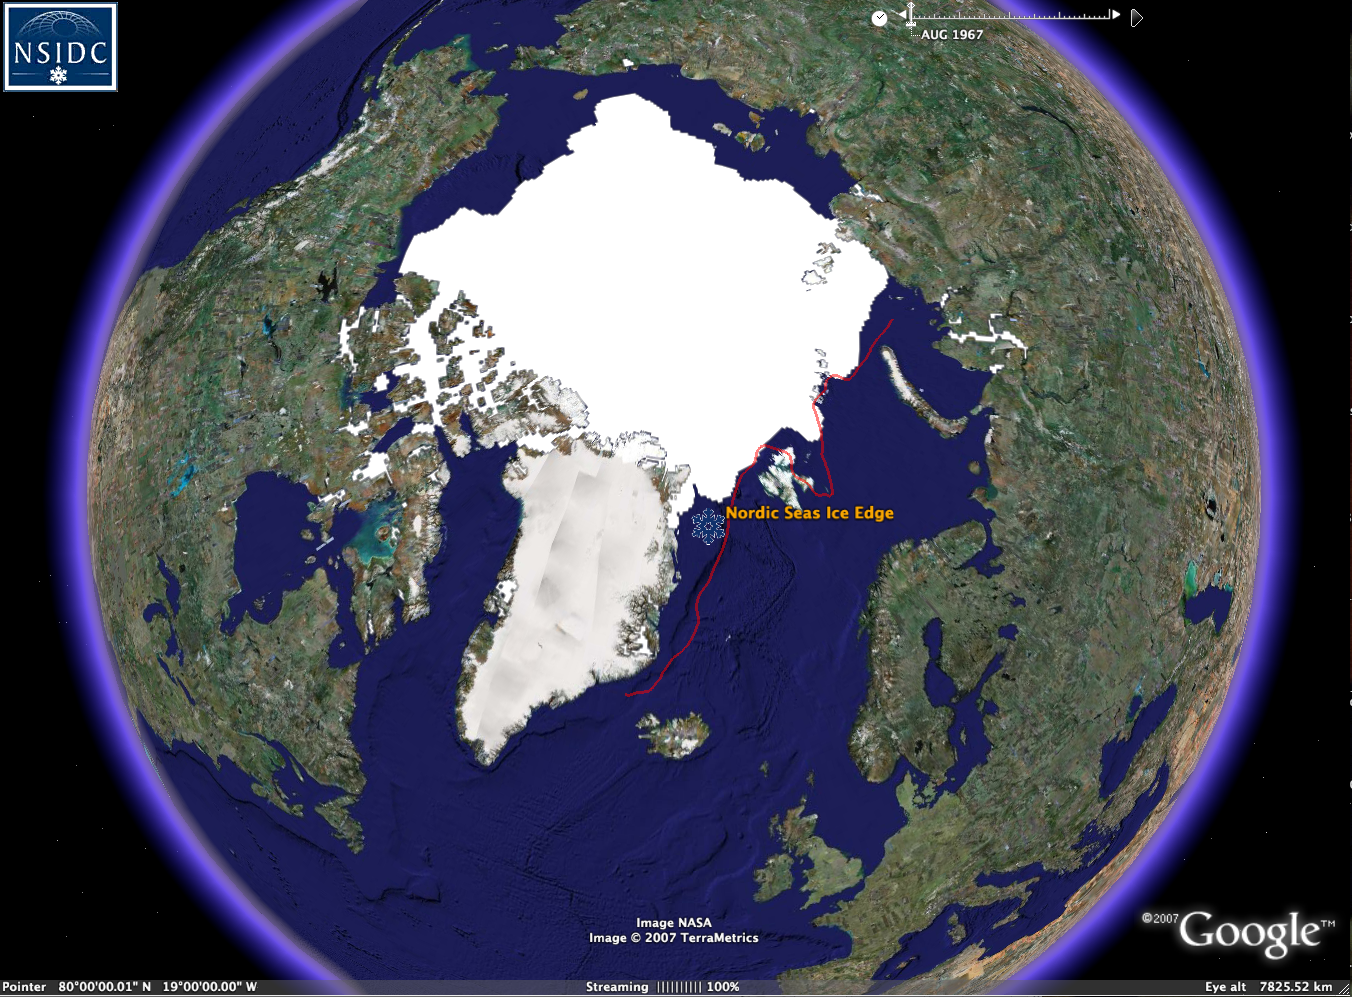 NSIDC Data on Google Earth | National Snow and Ice Data Center